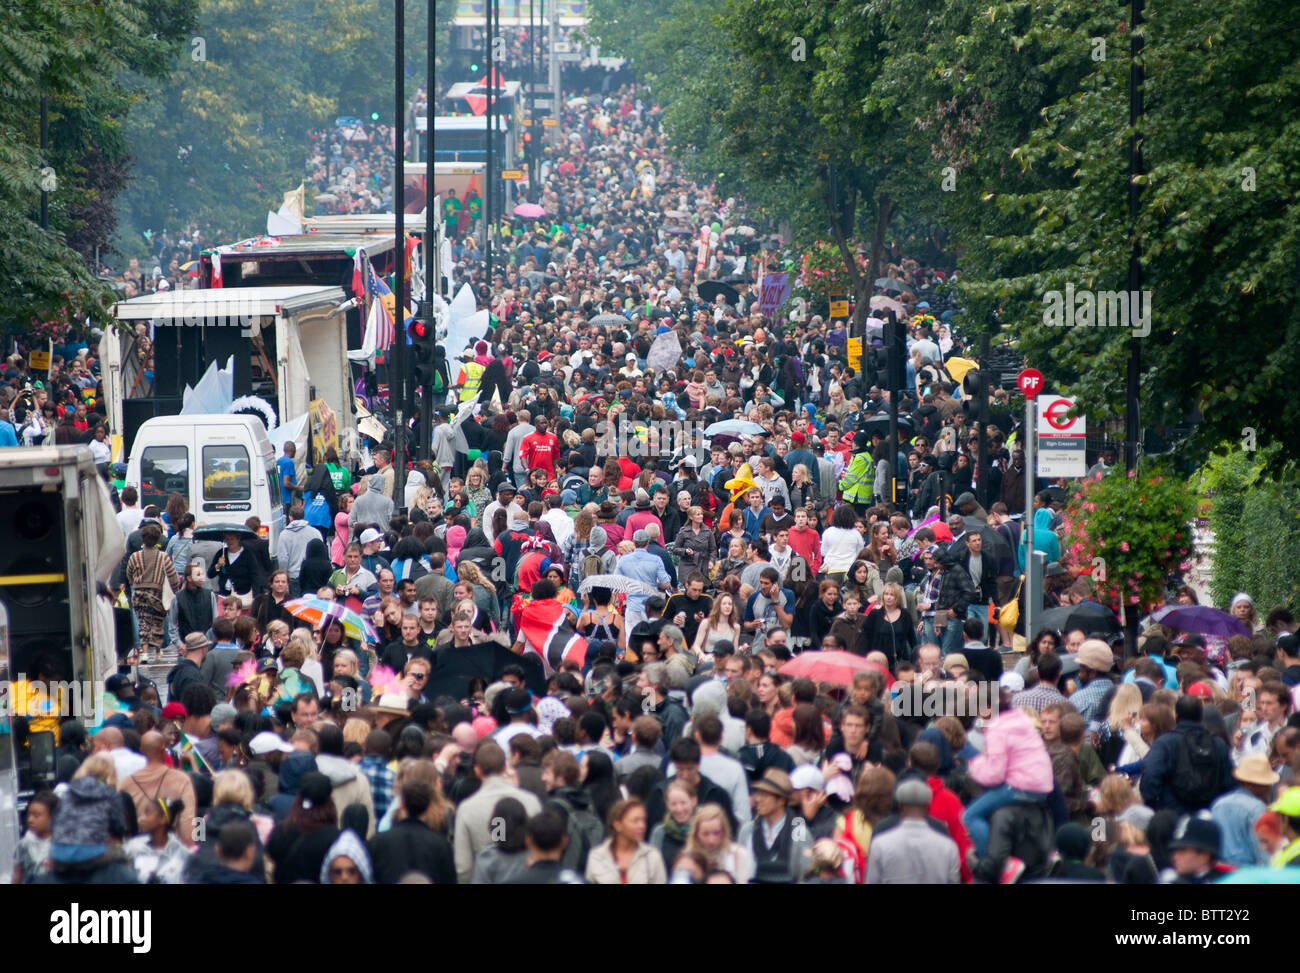 A crowded Ladbroke grove at the Notting Hill Carnival, London, England. - Stock Image